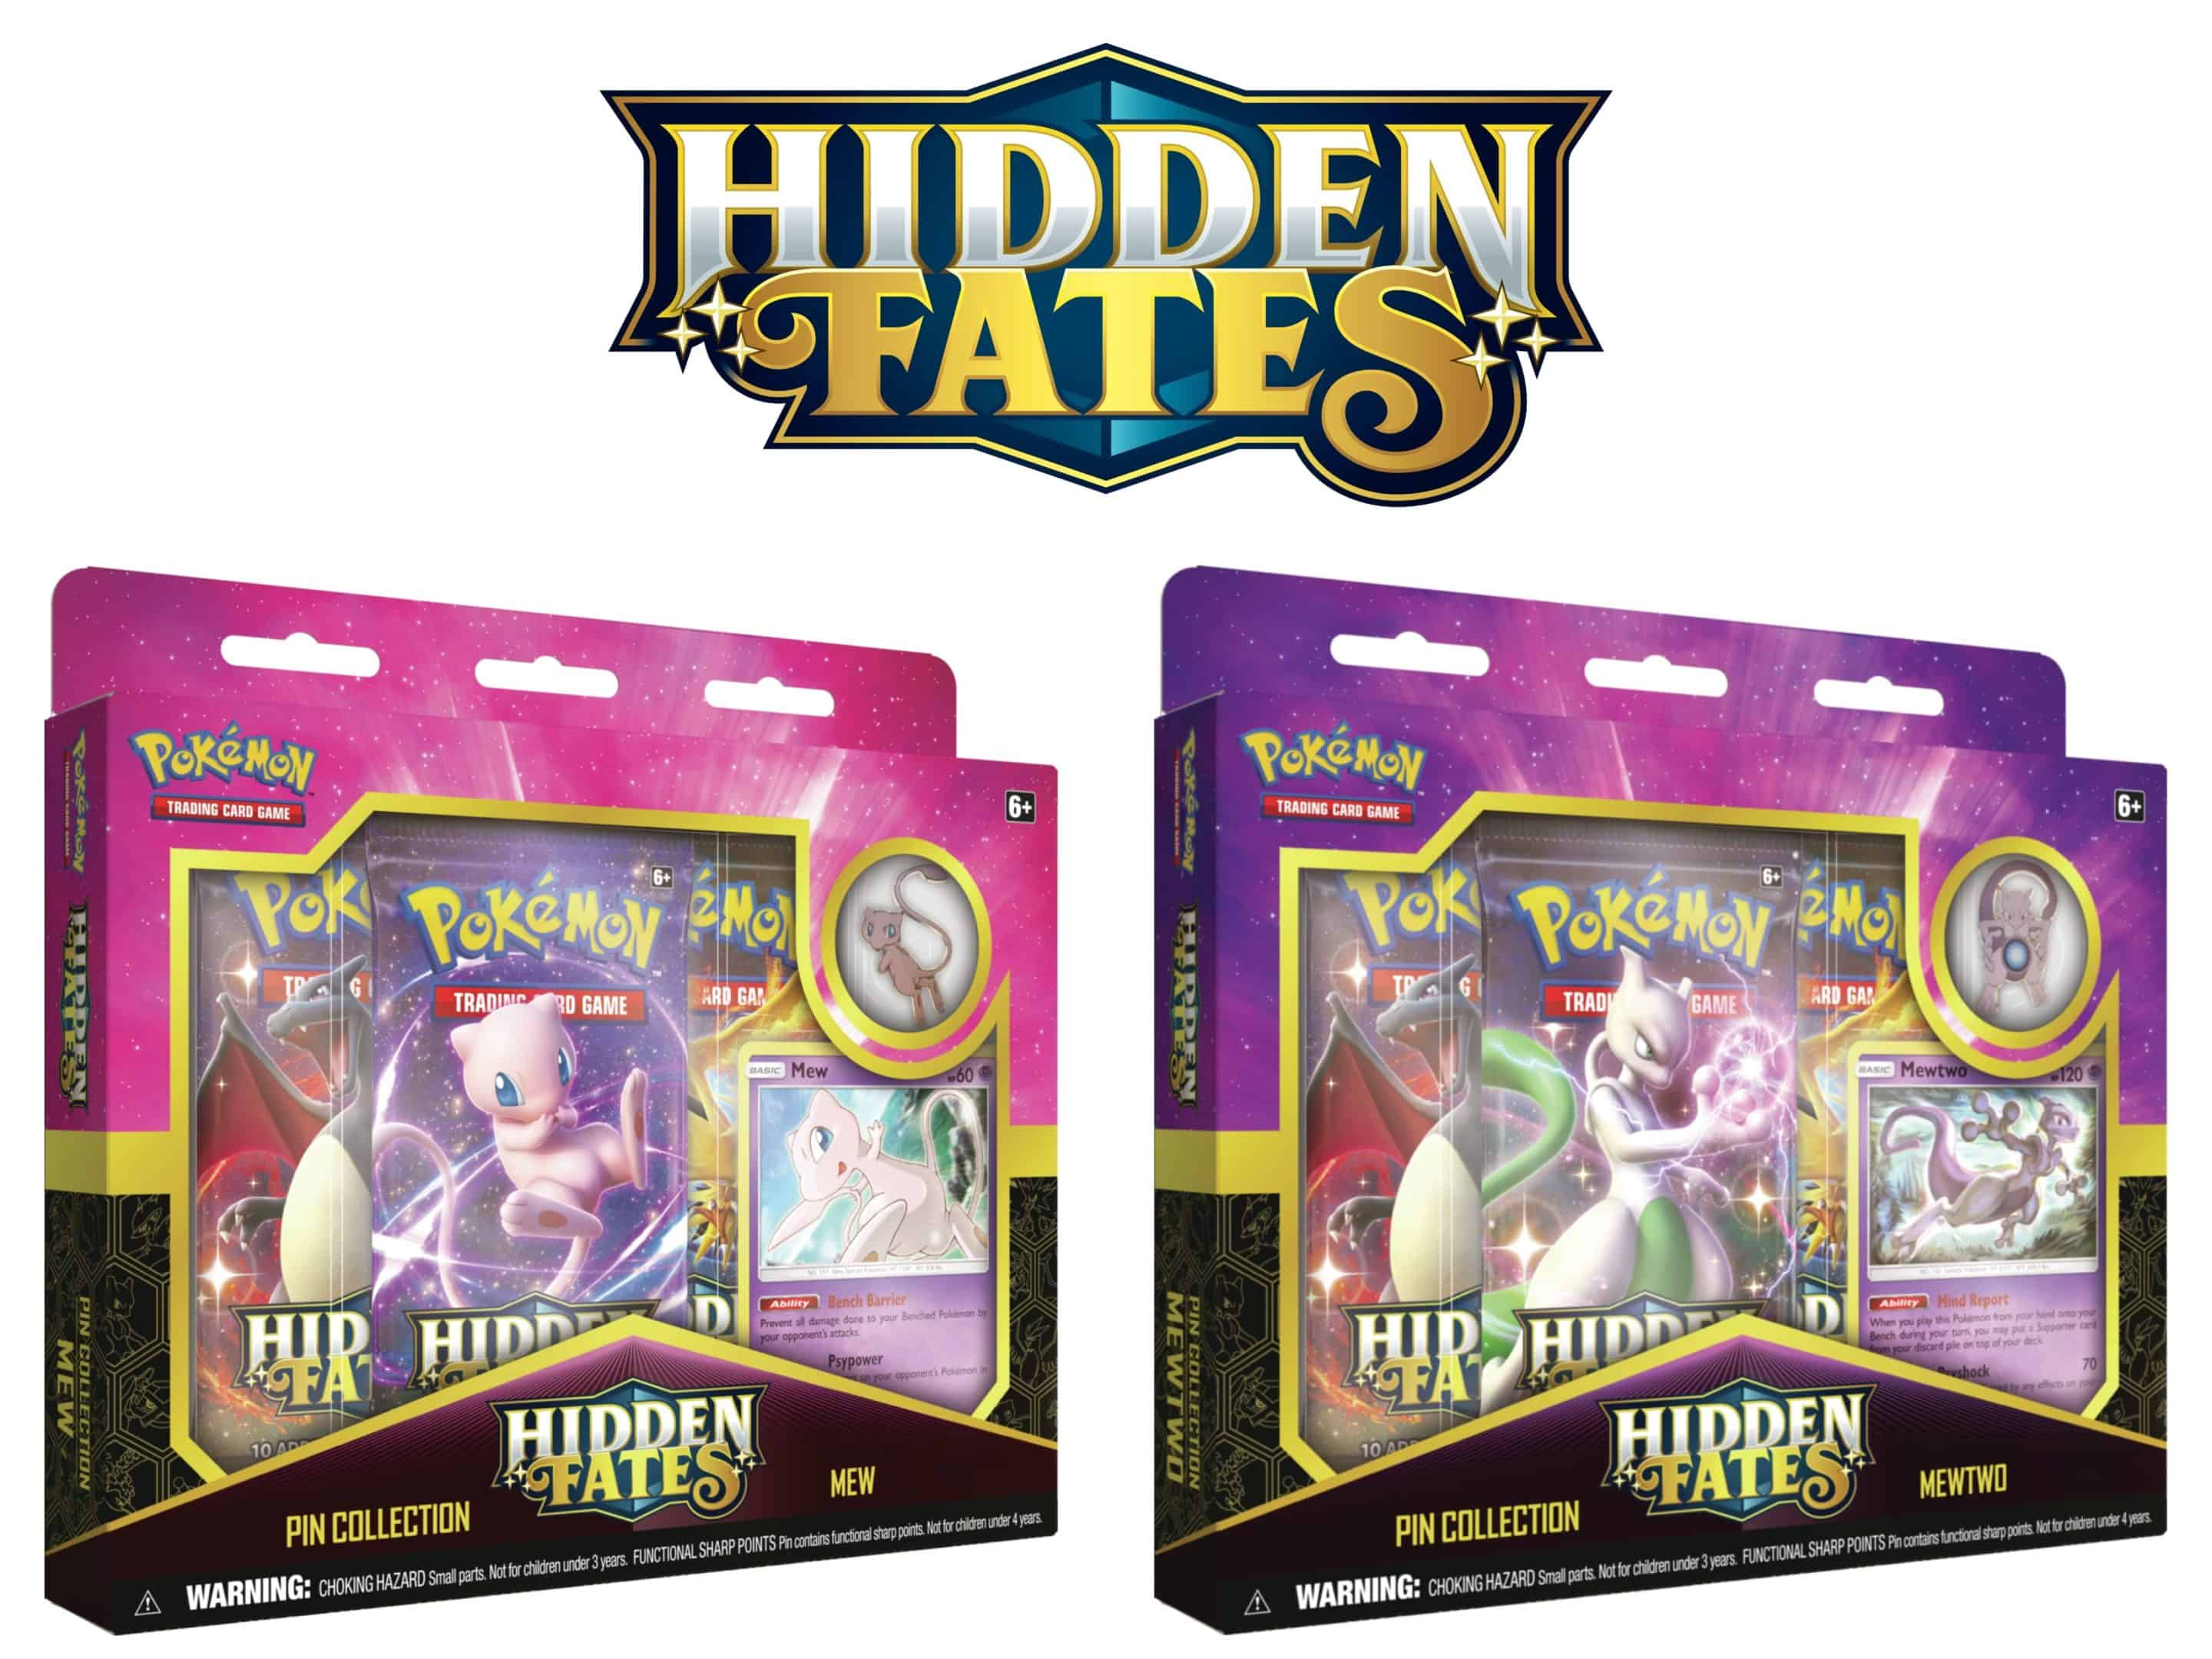 Hidden Fates Special Pokemon TCG Set Mew Mewtwo Pin Collection CardCollectors